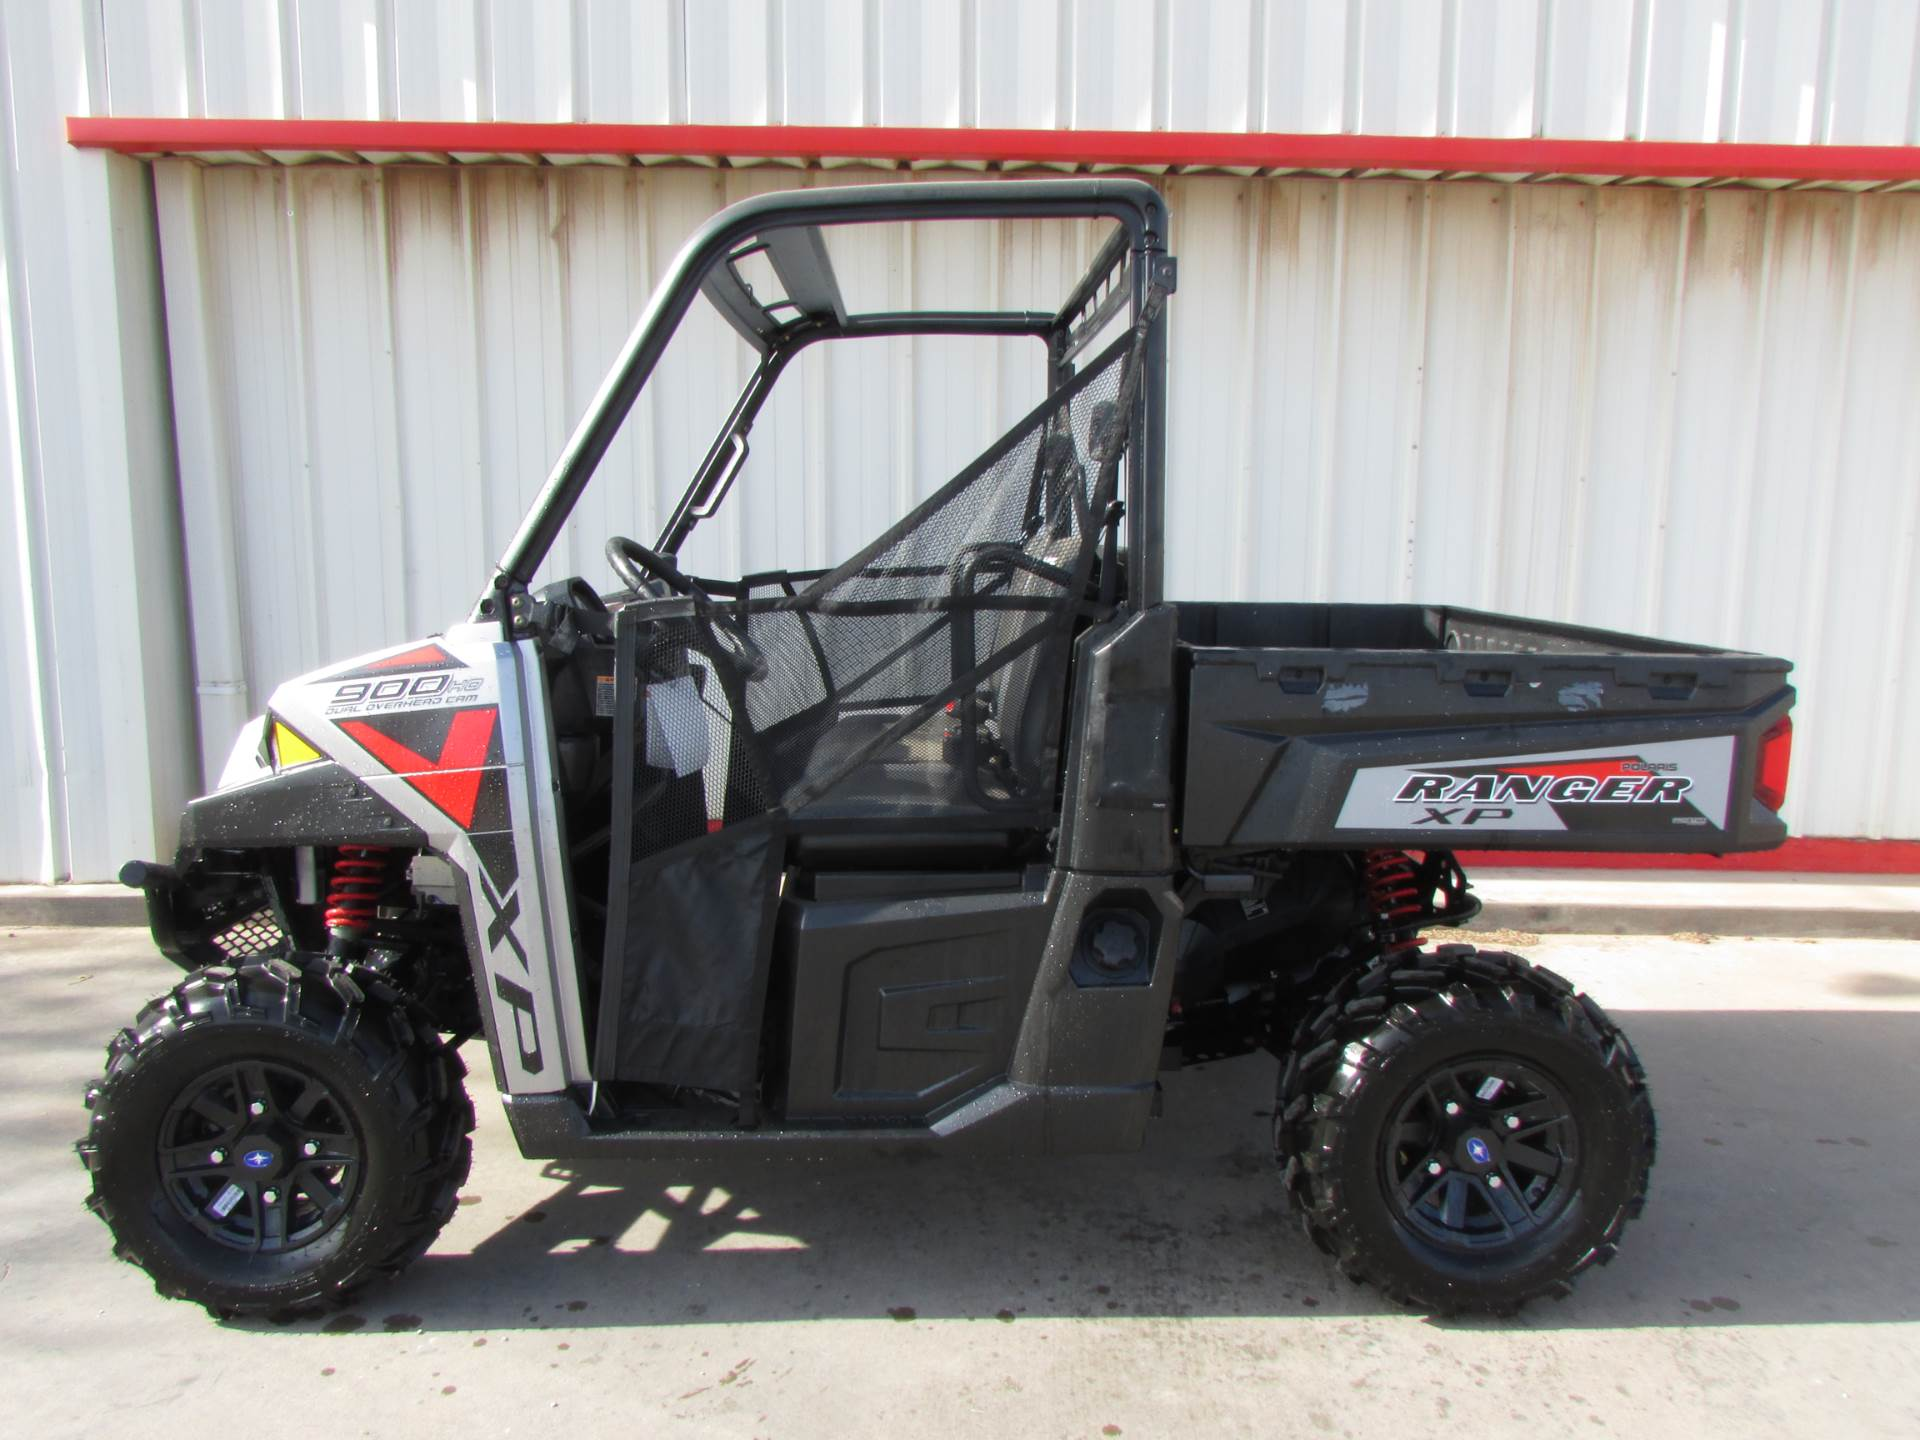 2019 Polaris Ranger XP 900 EPS for sale 27777